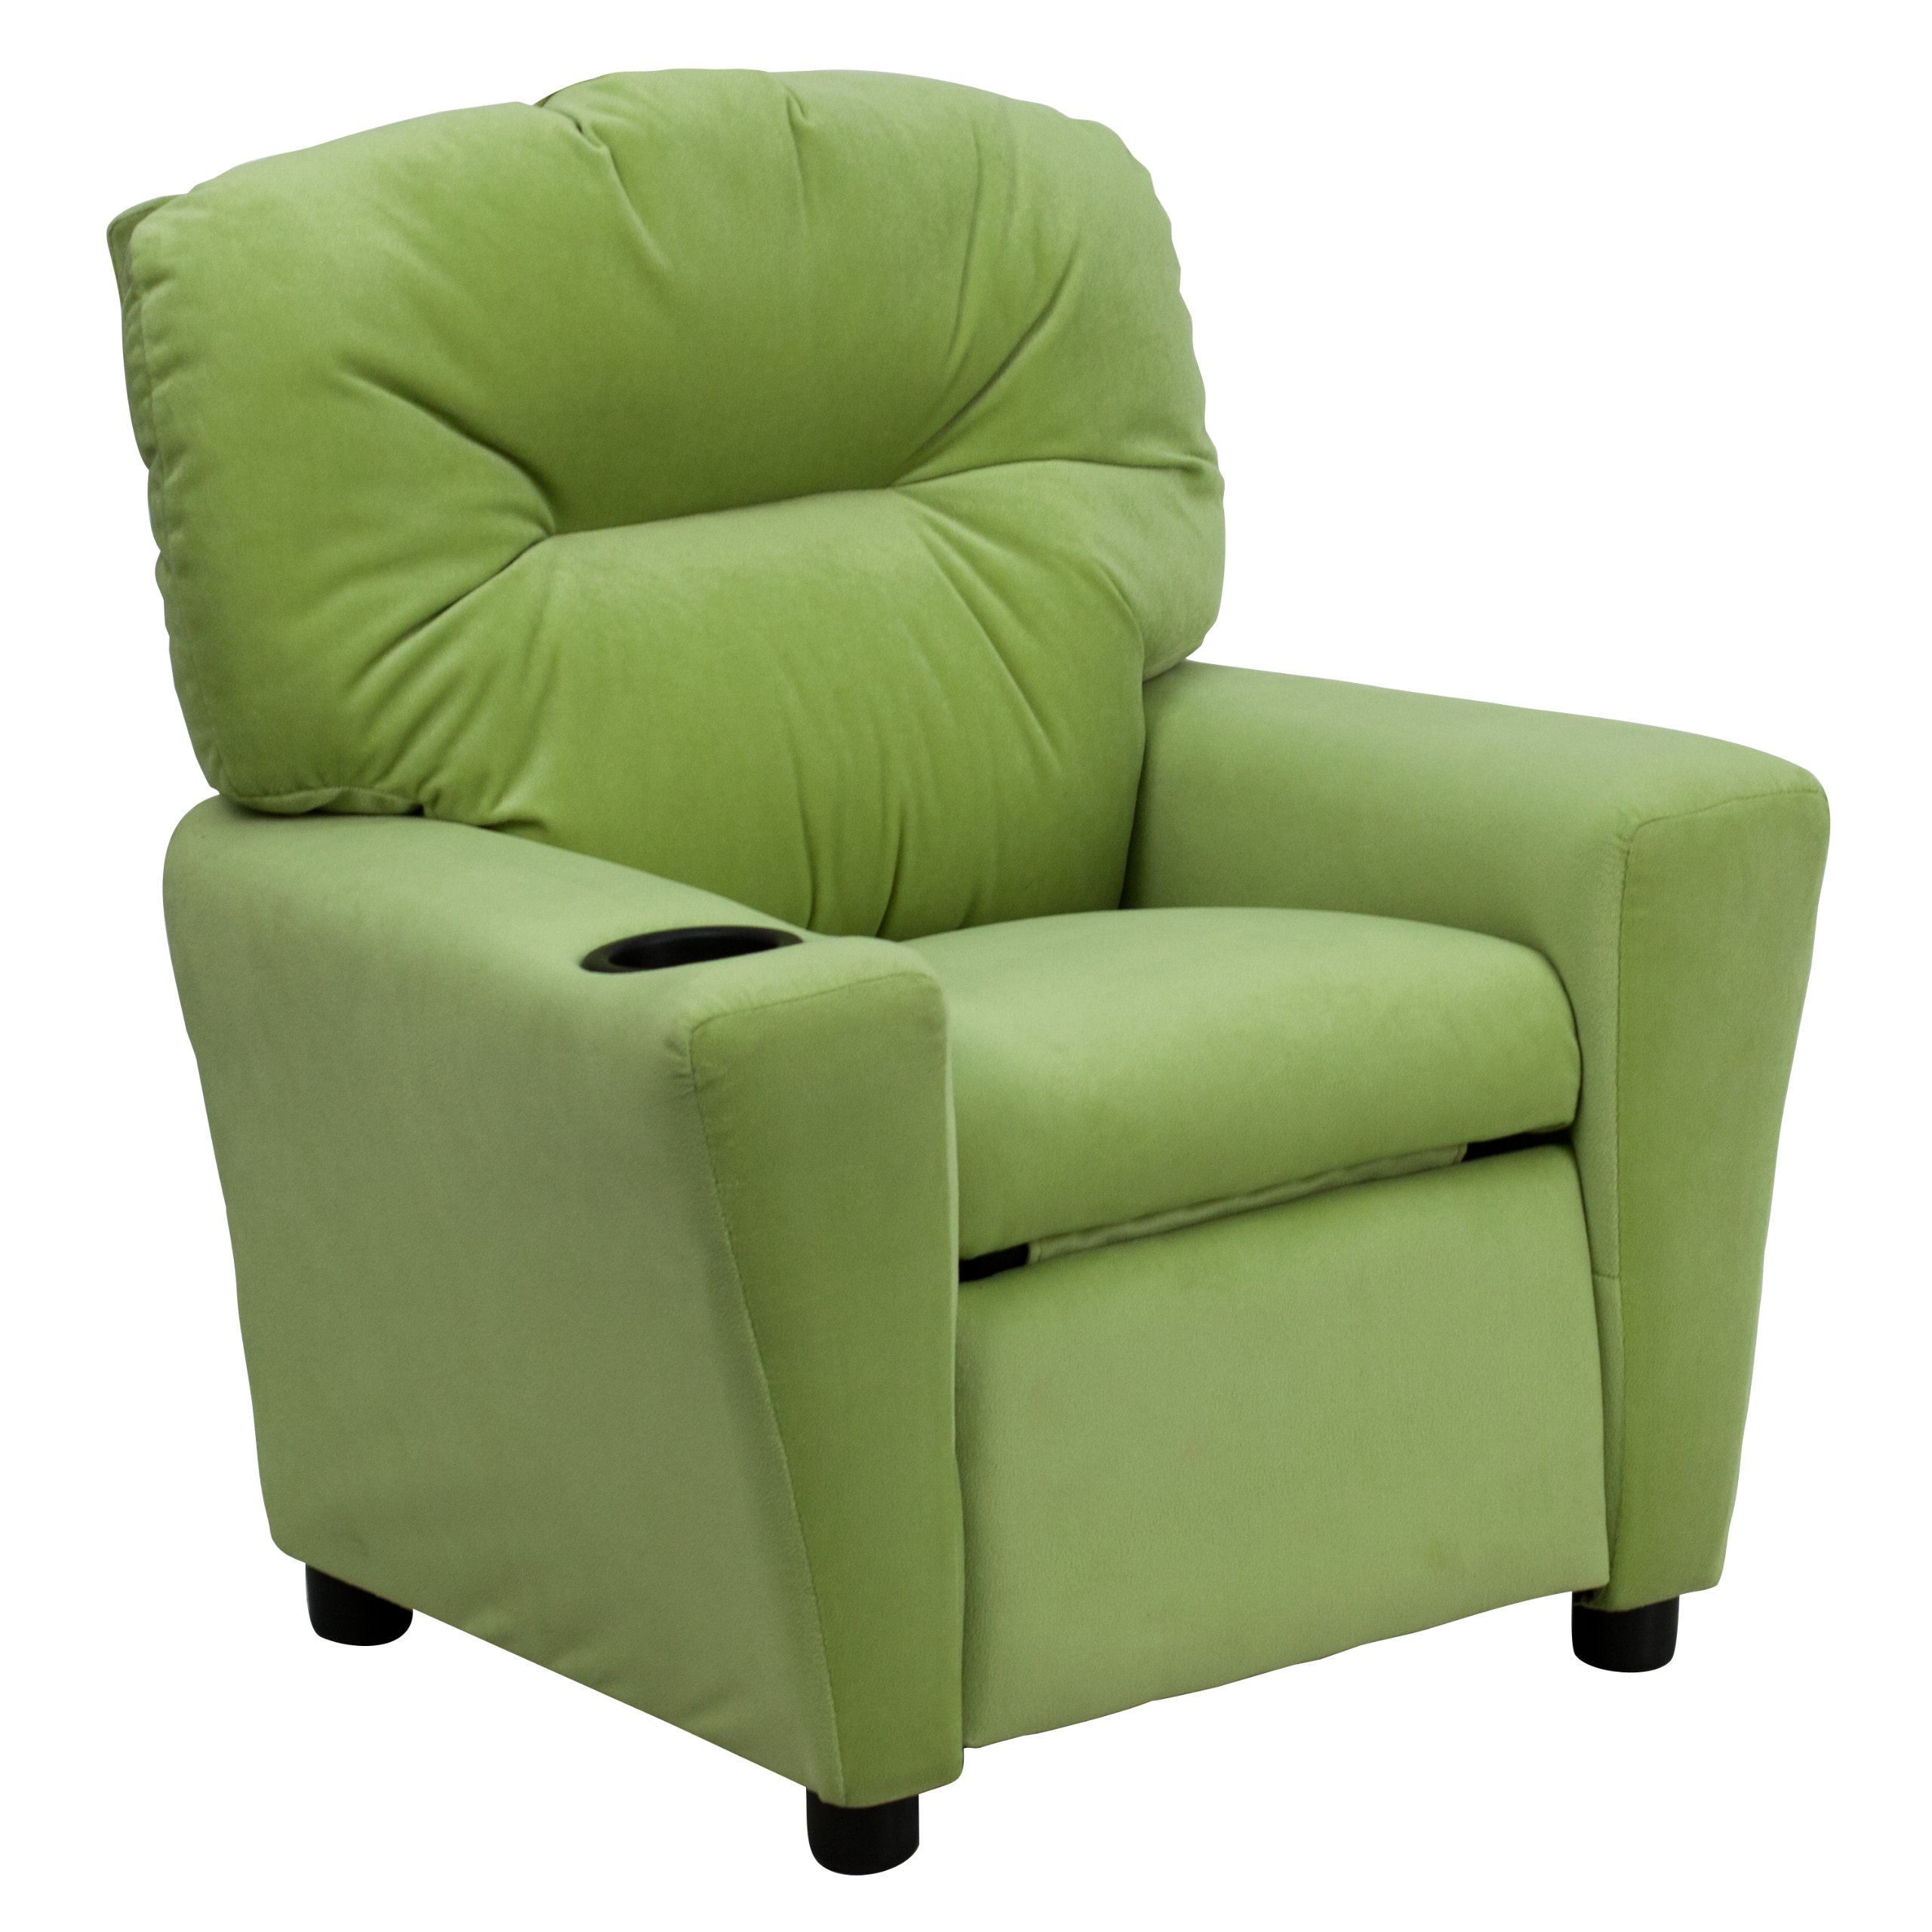 Winston Direct Kids' Series Contemporary Avocado Microfiber Recliner with Cup Holder